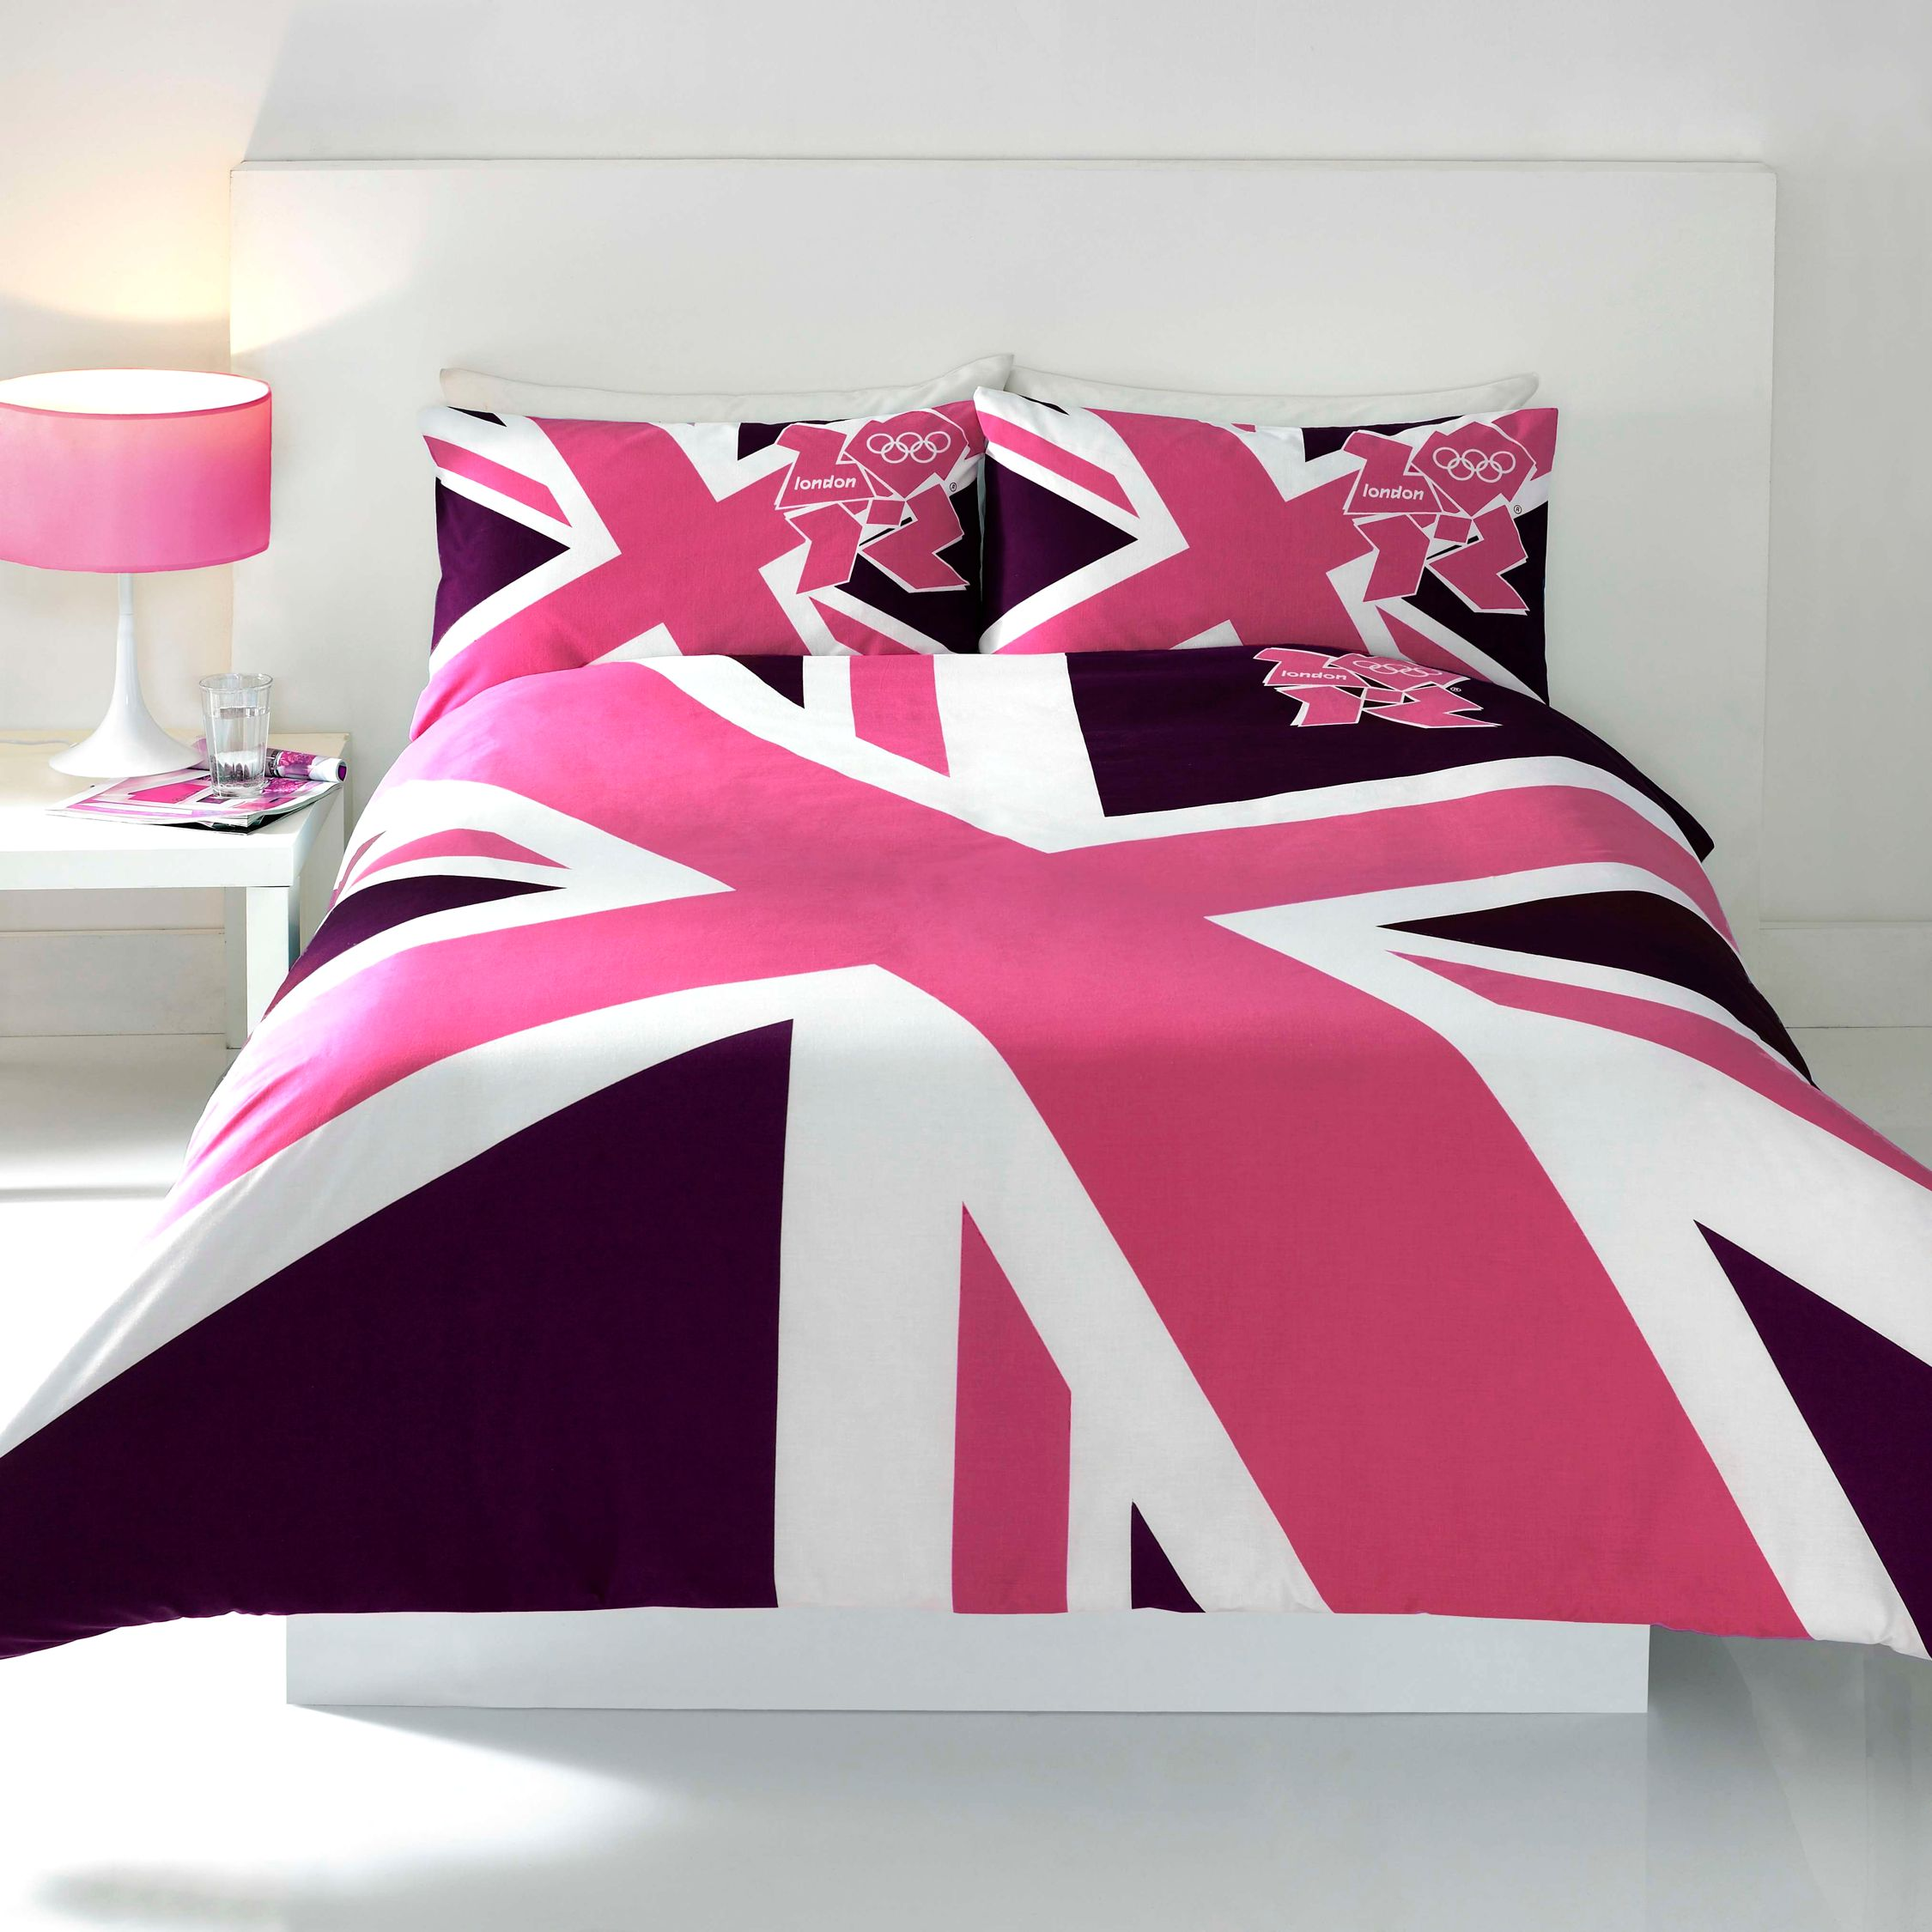 Fc duvet cover and pillowcase for Pink union jack bedding